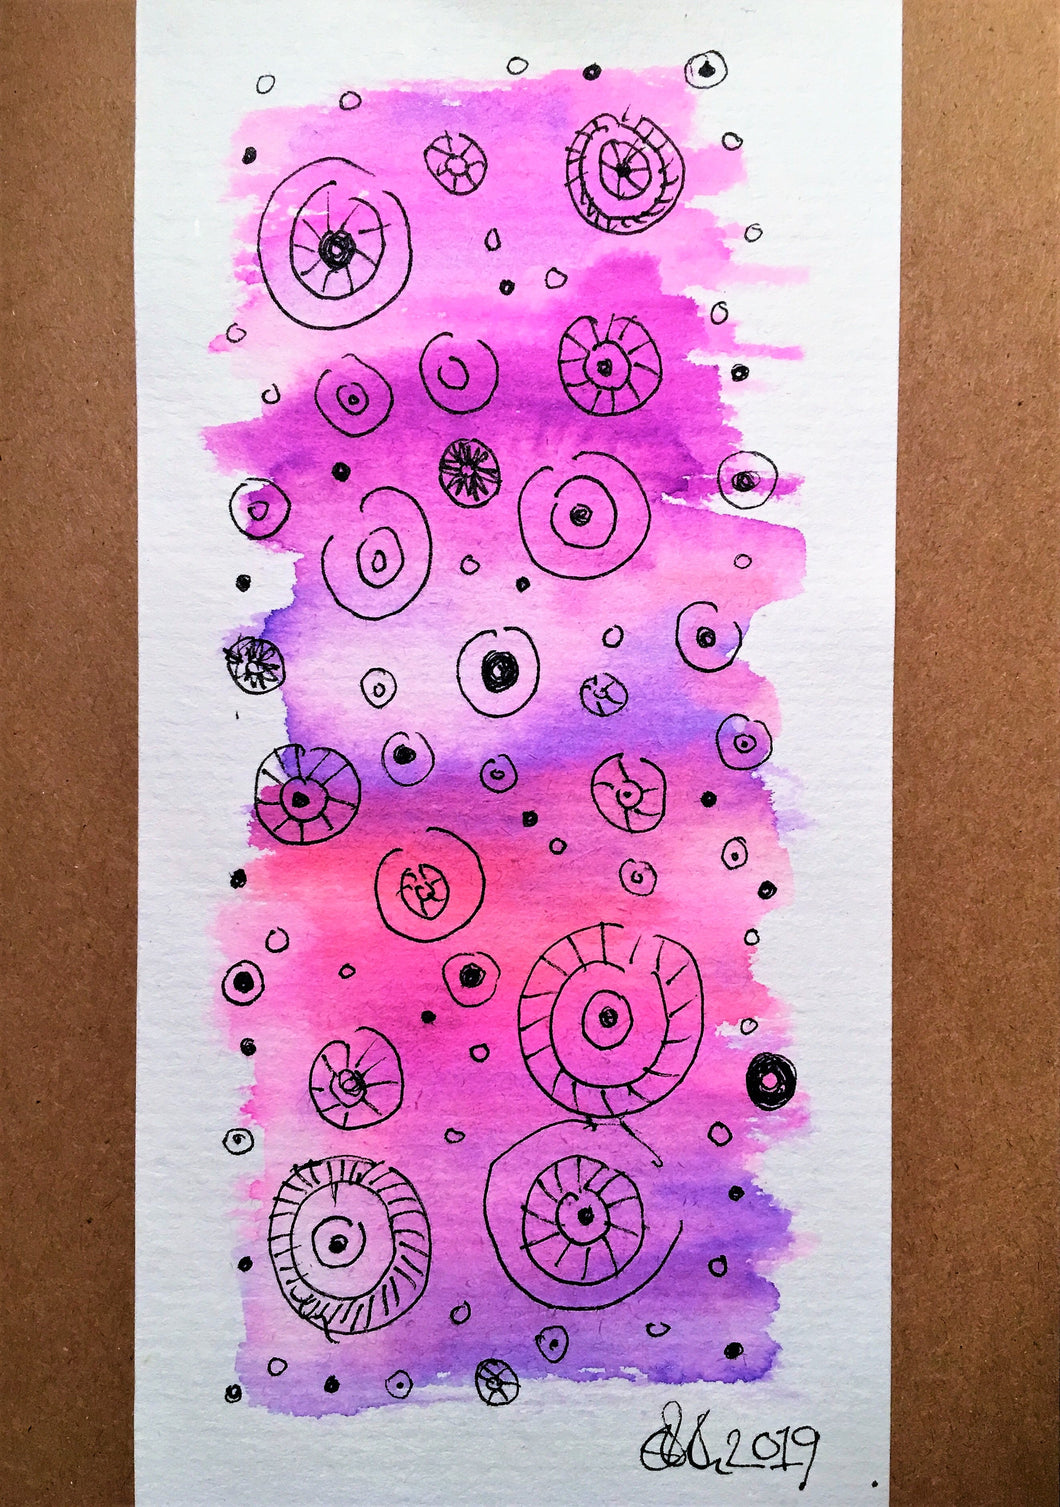 Handpainted Watercolour Greeting Card - Abstract Pink/Purple/Lilac with Ink Circle Design - eDgE dEsiGn London